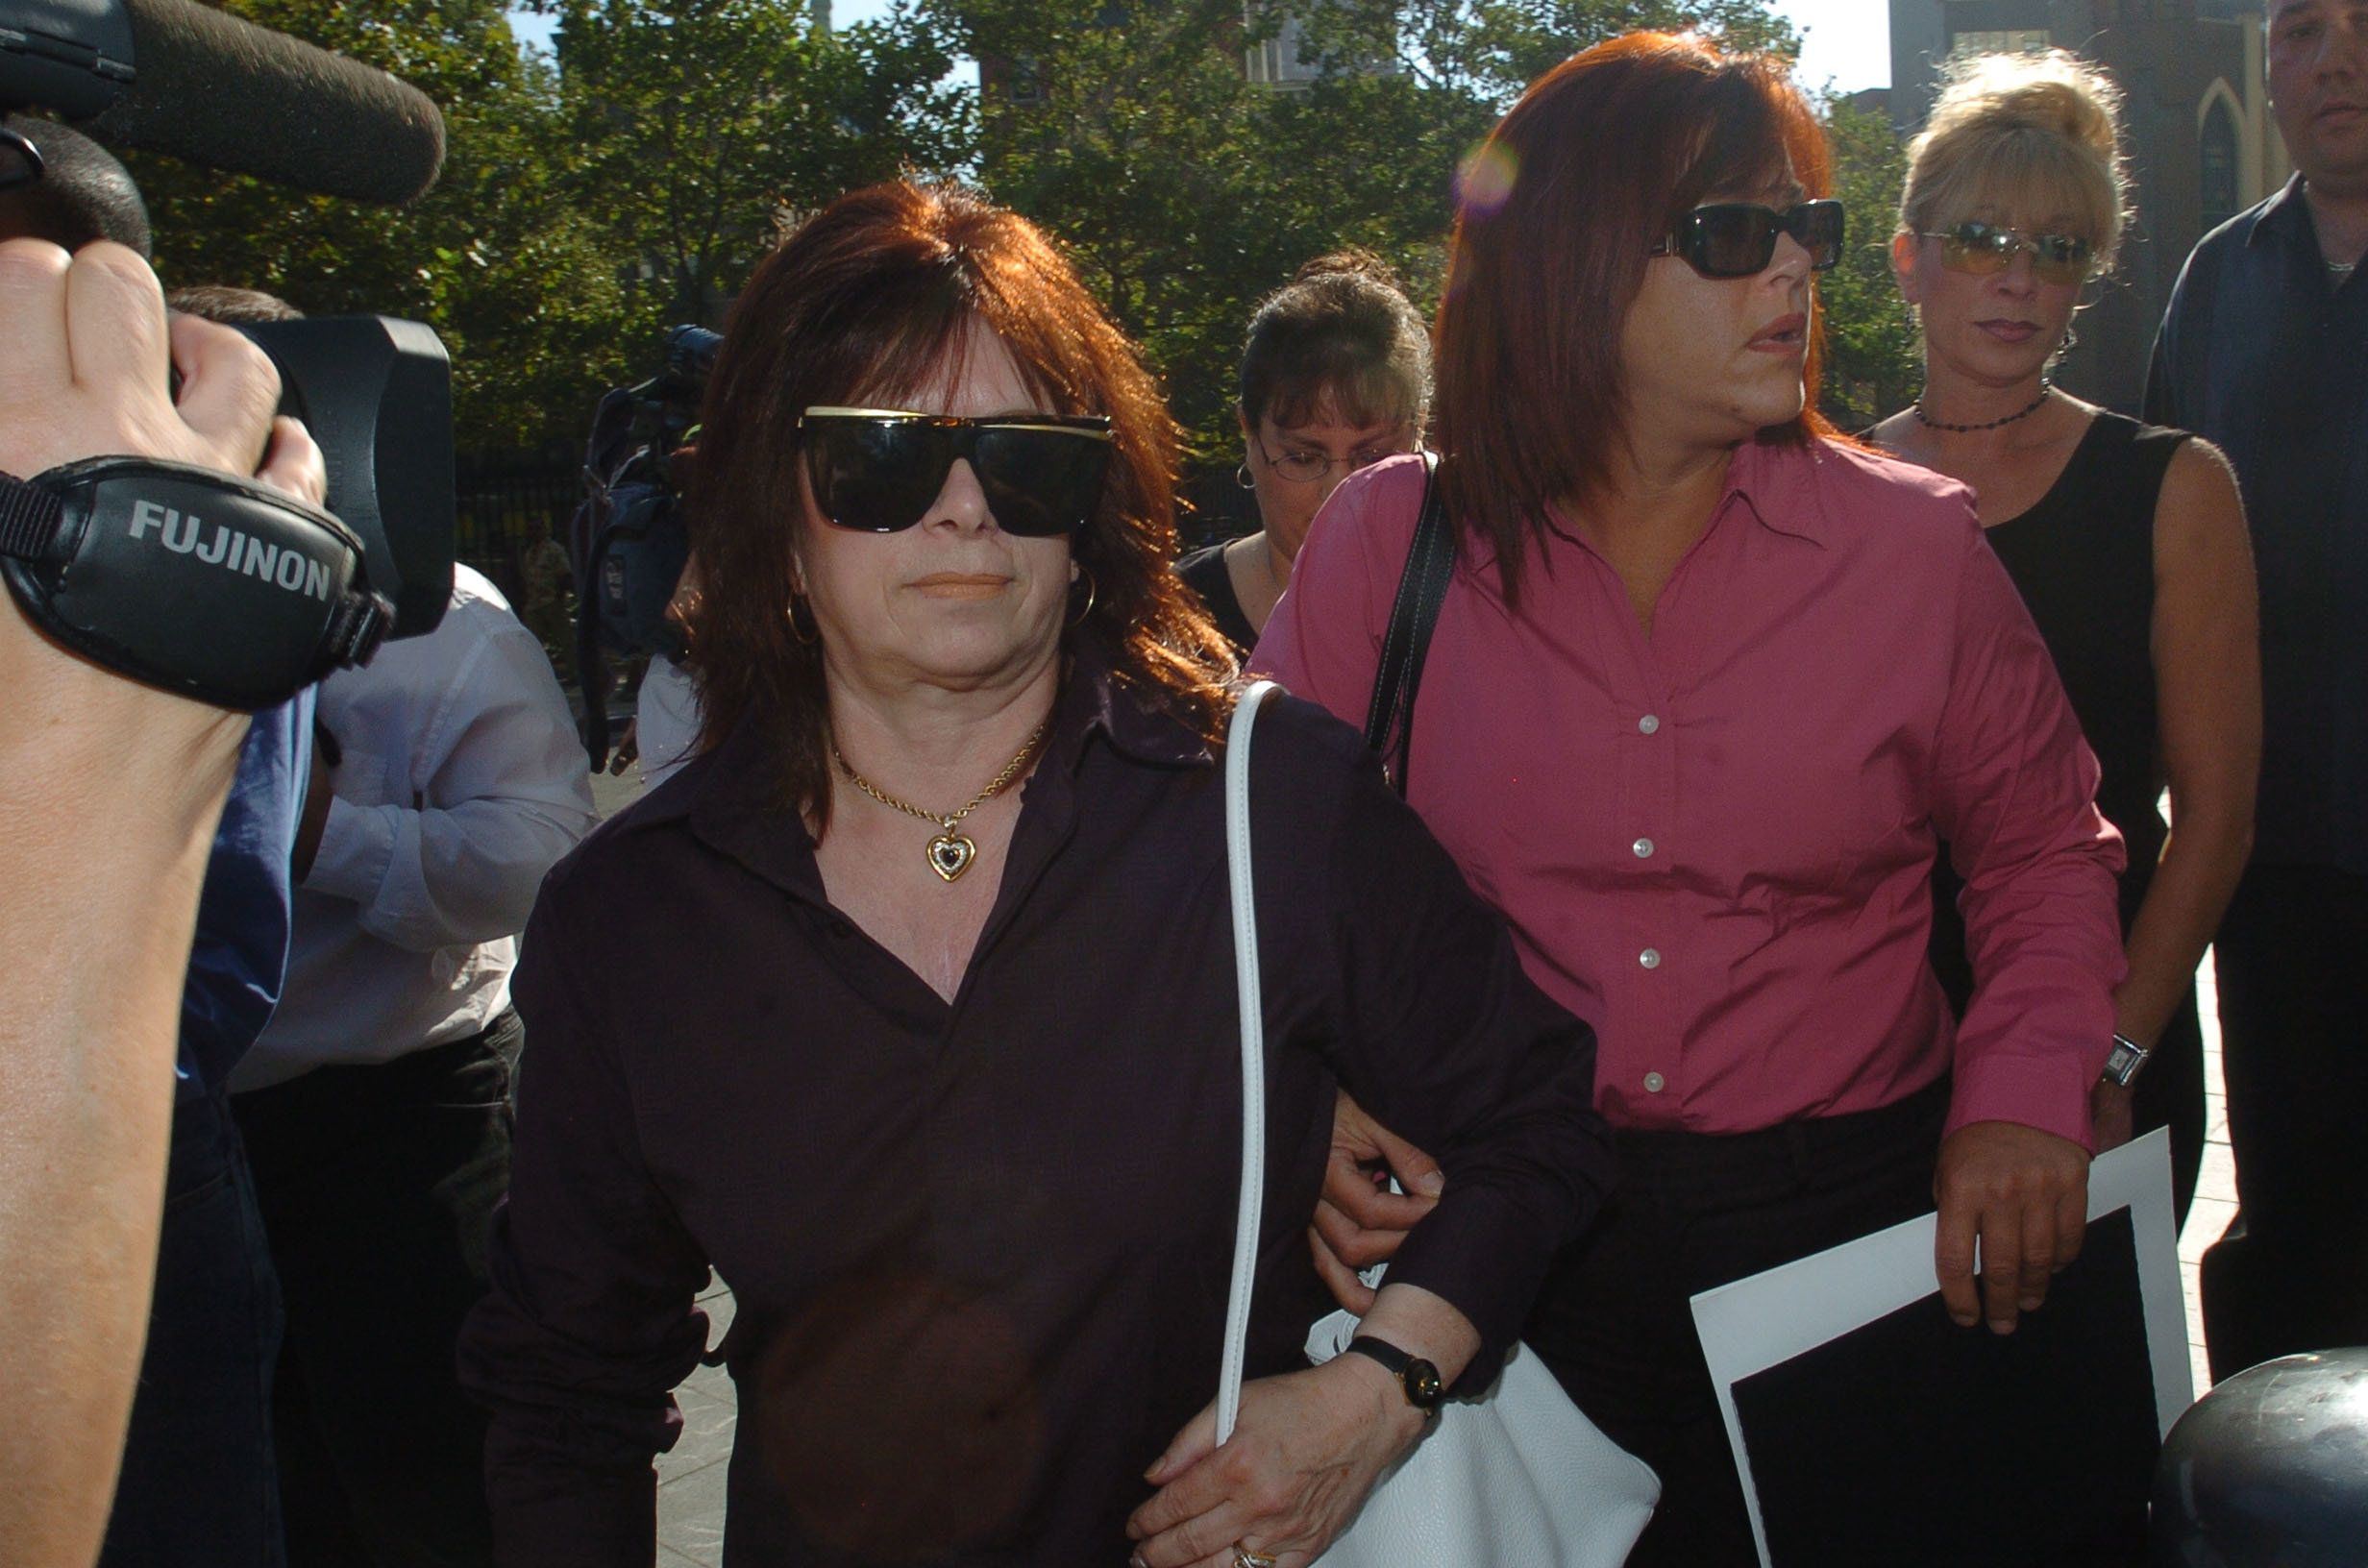 """Victoria Gotti, widow of former mob boss John Gotti, arrives for the trial of her son, John A. Gotti, also known as """"Junior"""" Gotti, at Manhattan Federal Court in New York August 22, 2005. Gotti faces an array of charges including conspiracy to kidnap Guardian Angels founder Curtis Sliwa more than a decade ago. REUTERS/Keith Bedford  XX/TY"""